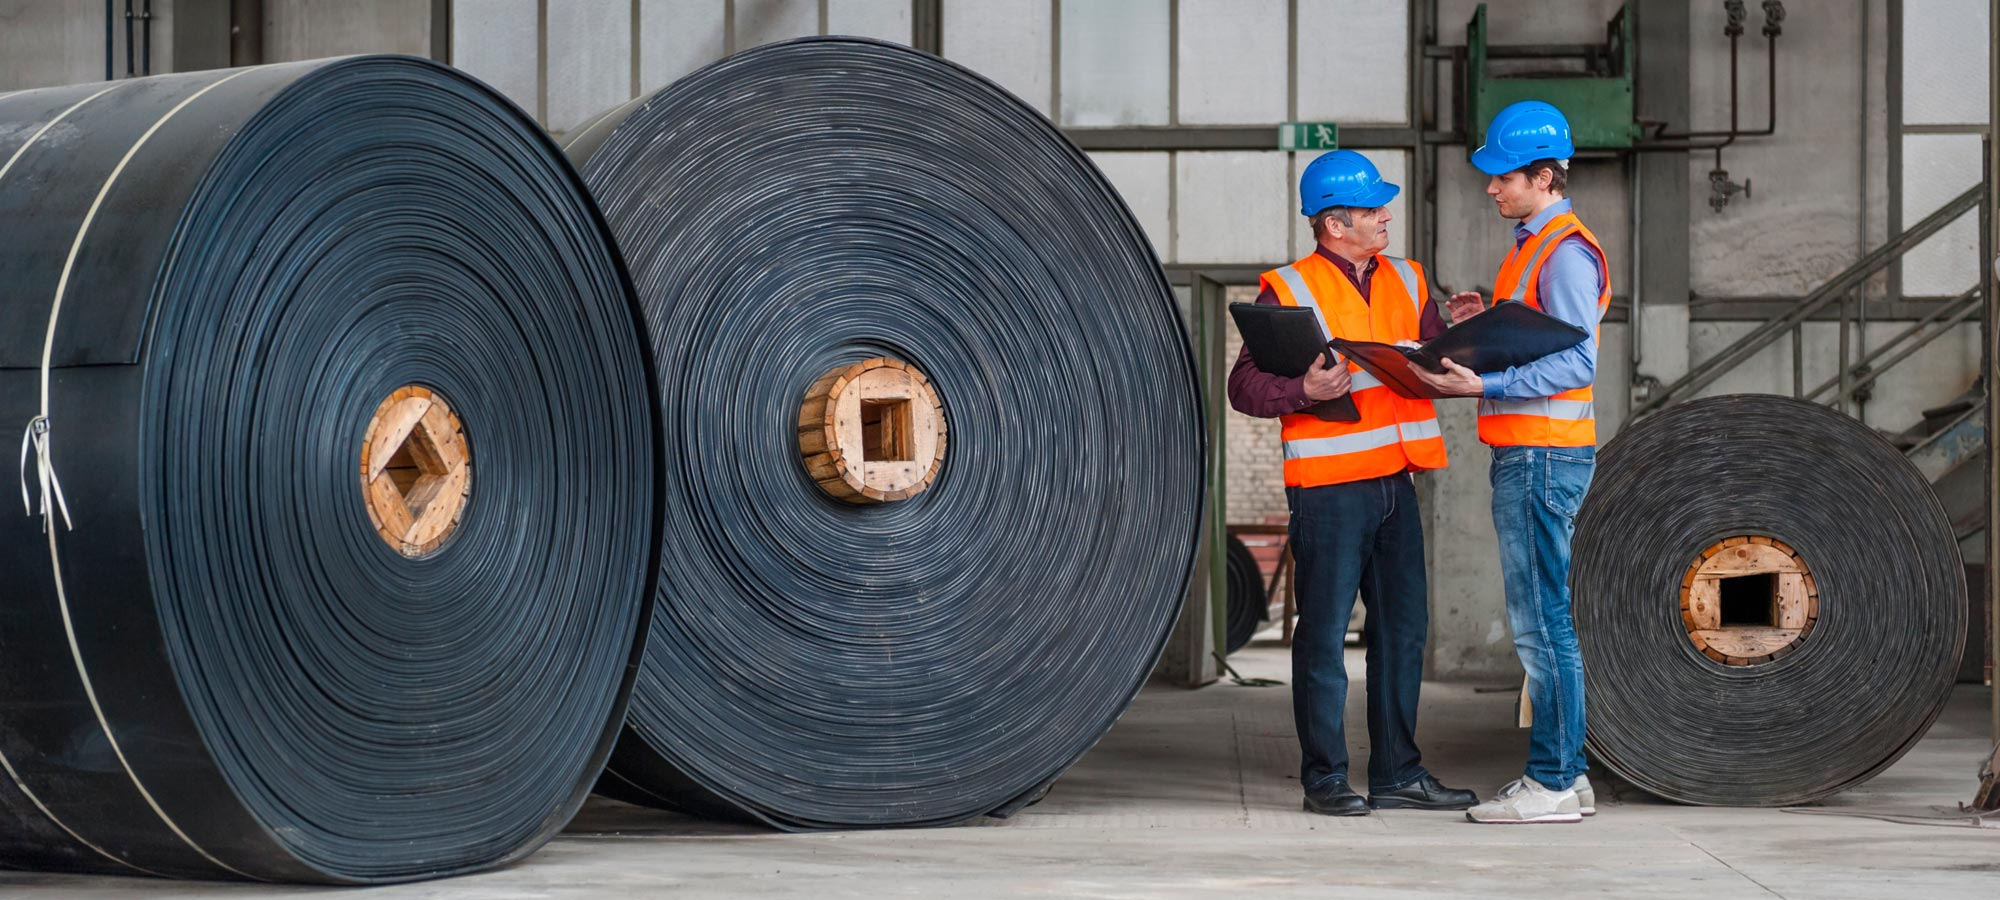 What are the benefits of using Industrial Belts?